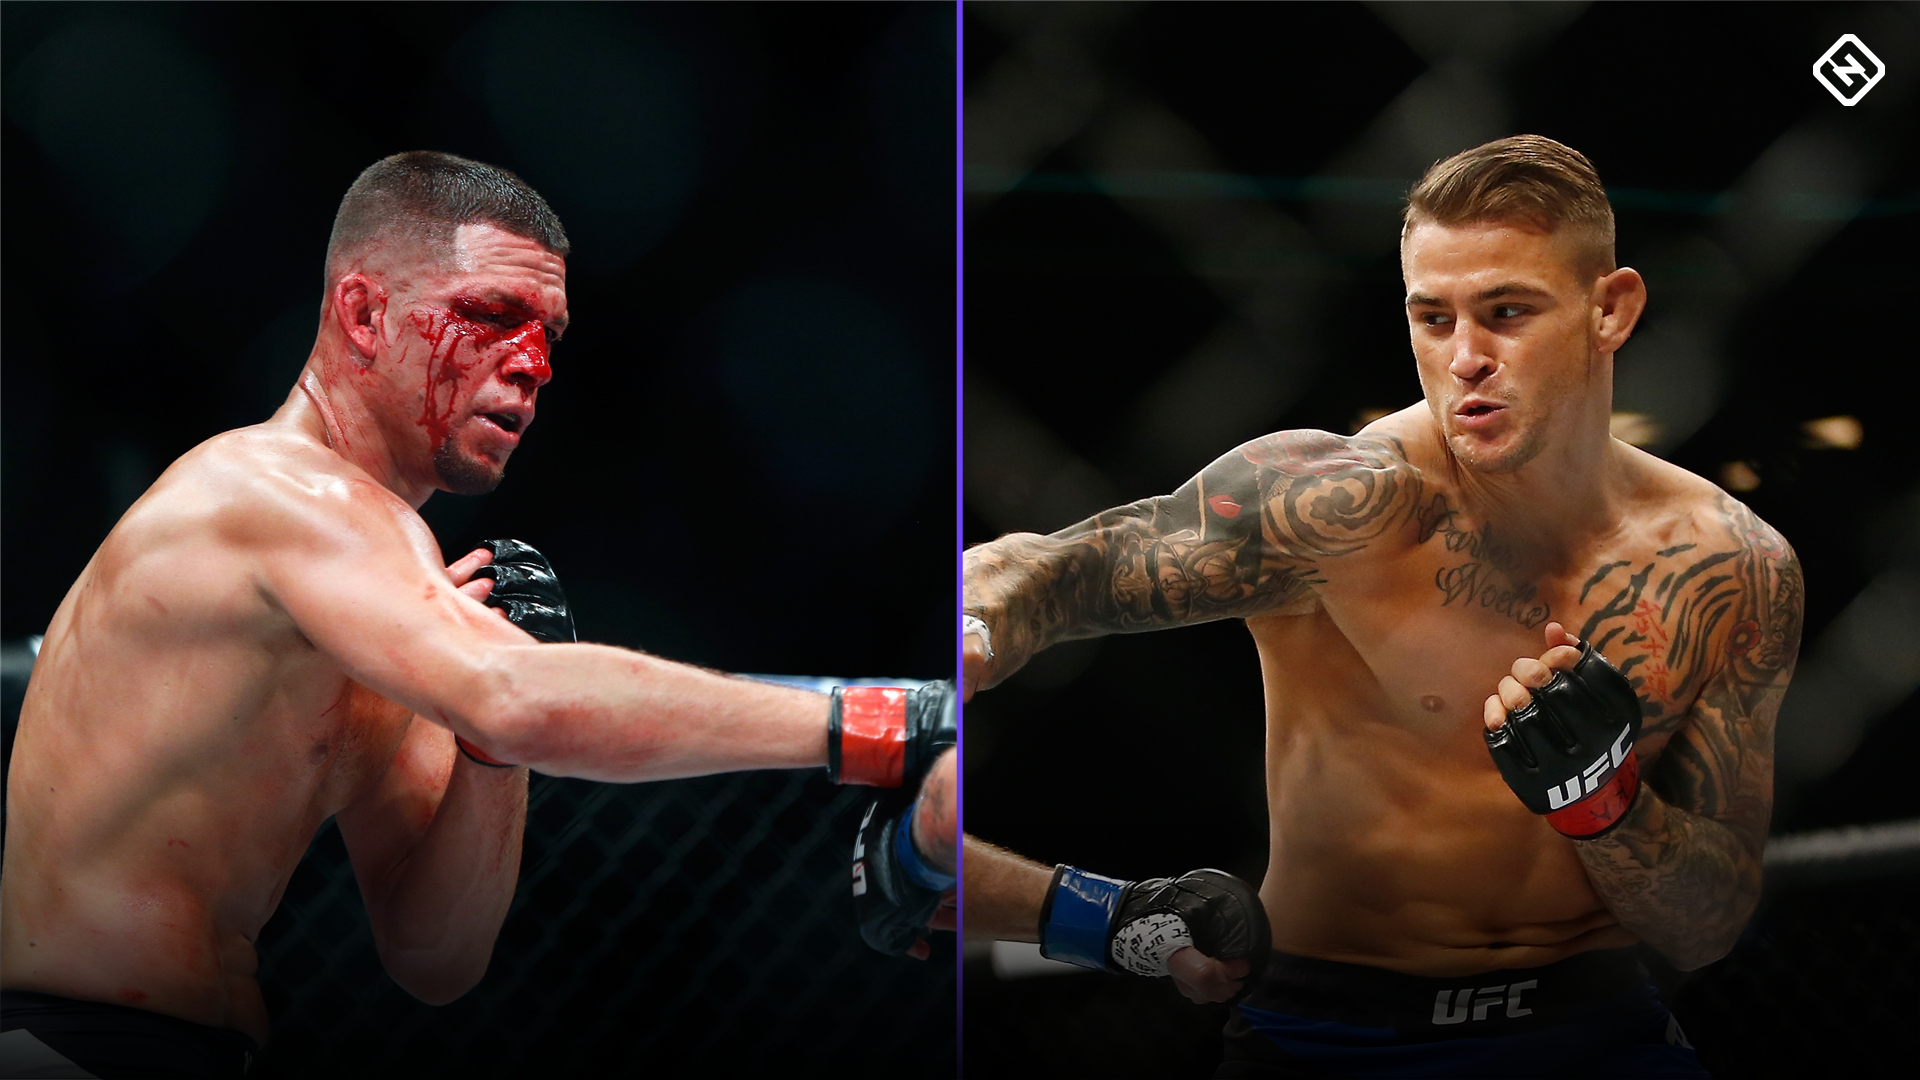 Nate Diaz Returns to Face Dustin Poirier at UFC 230